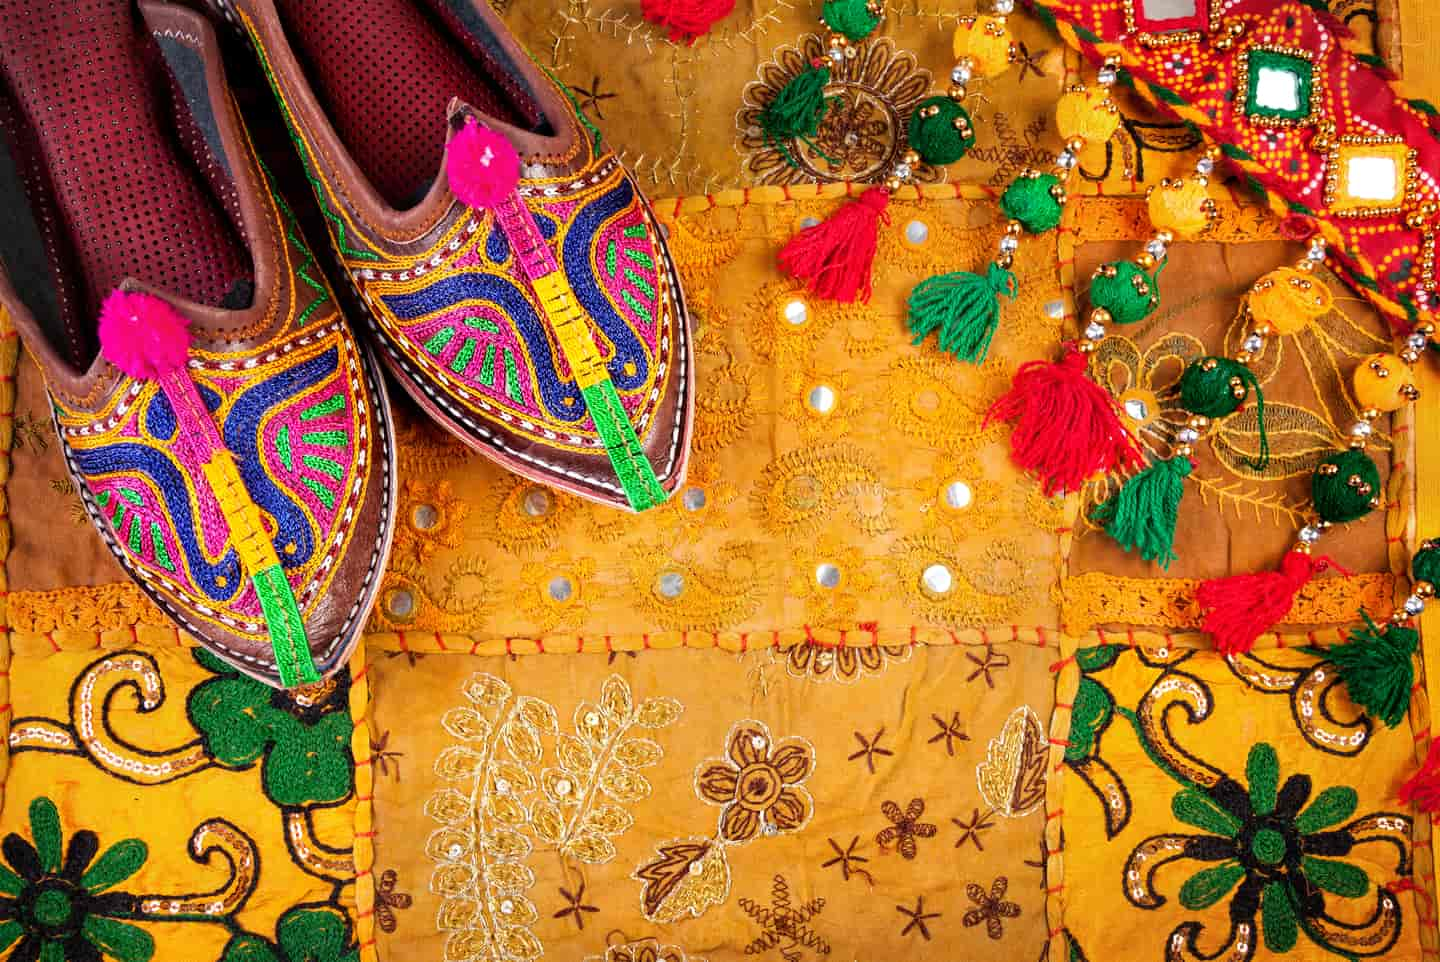 12 shopping places in udaipur, best places to shop in udaipur